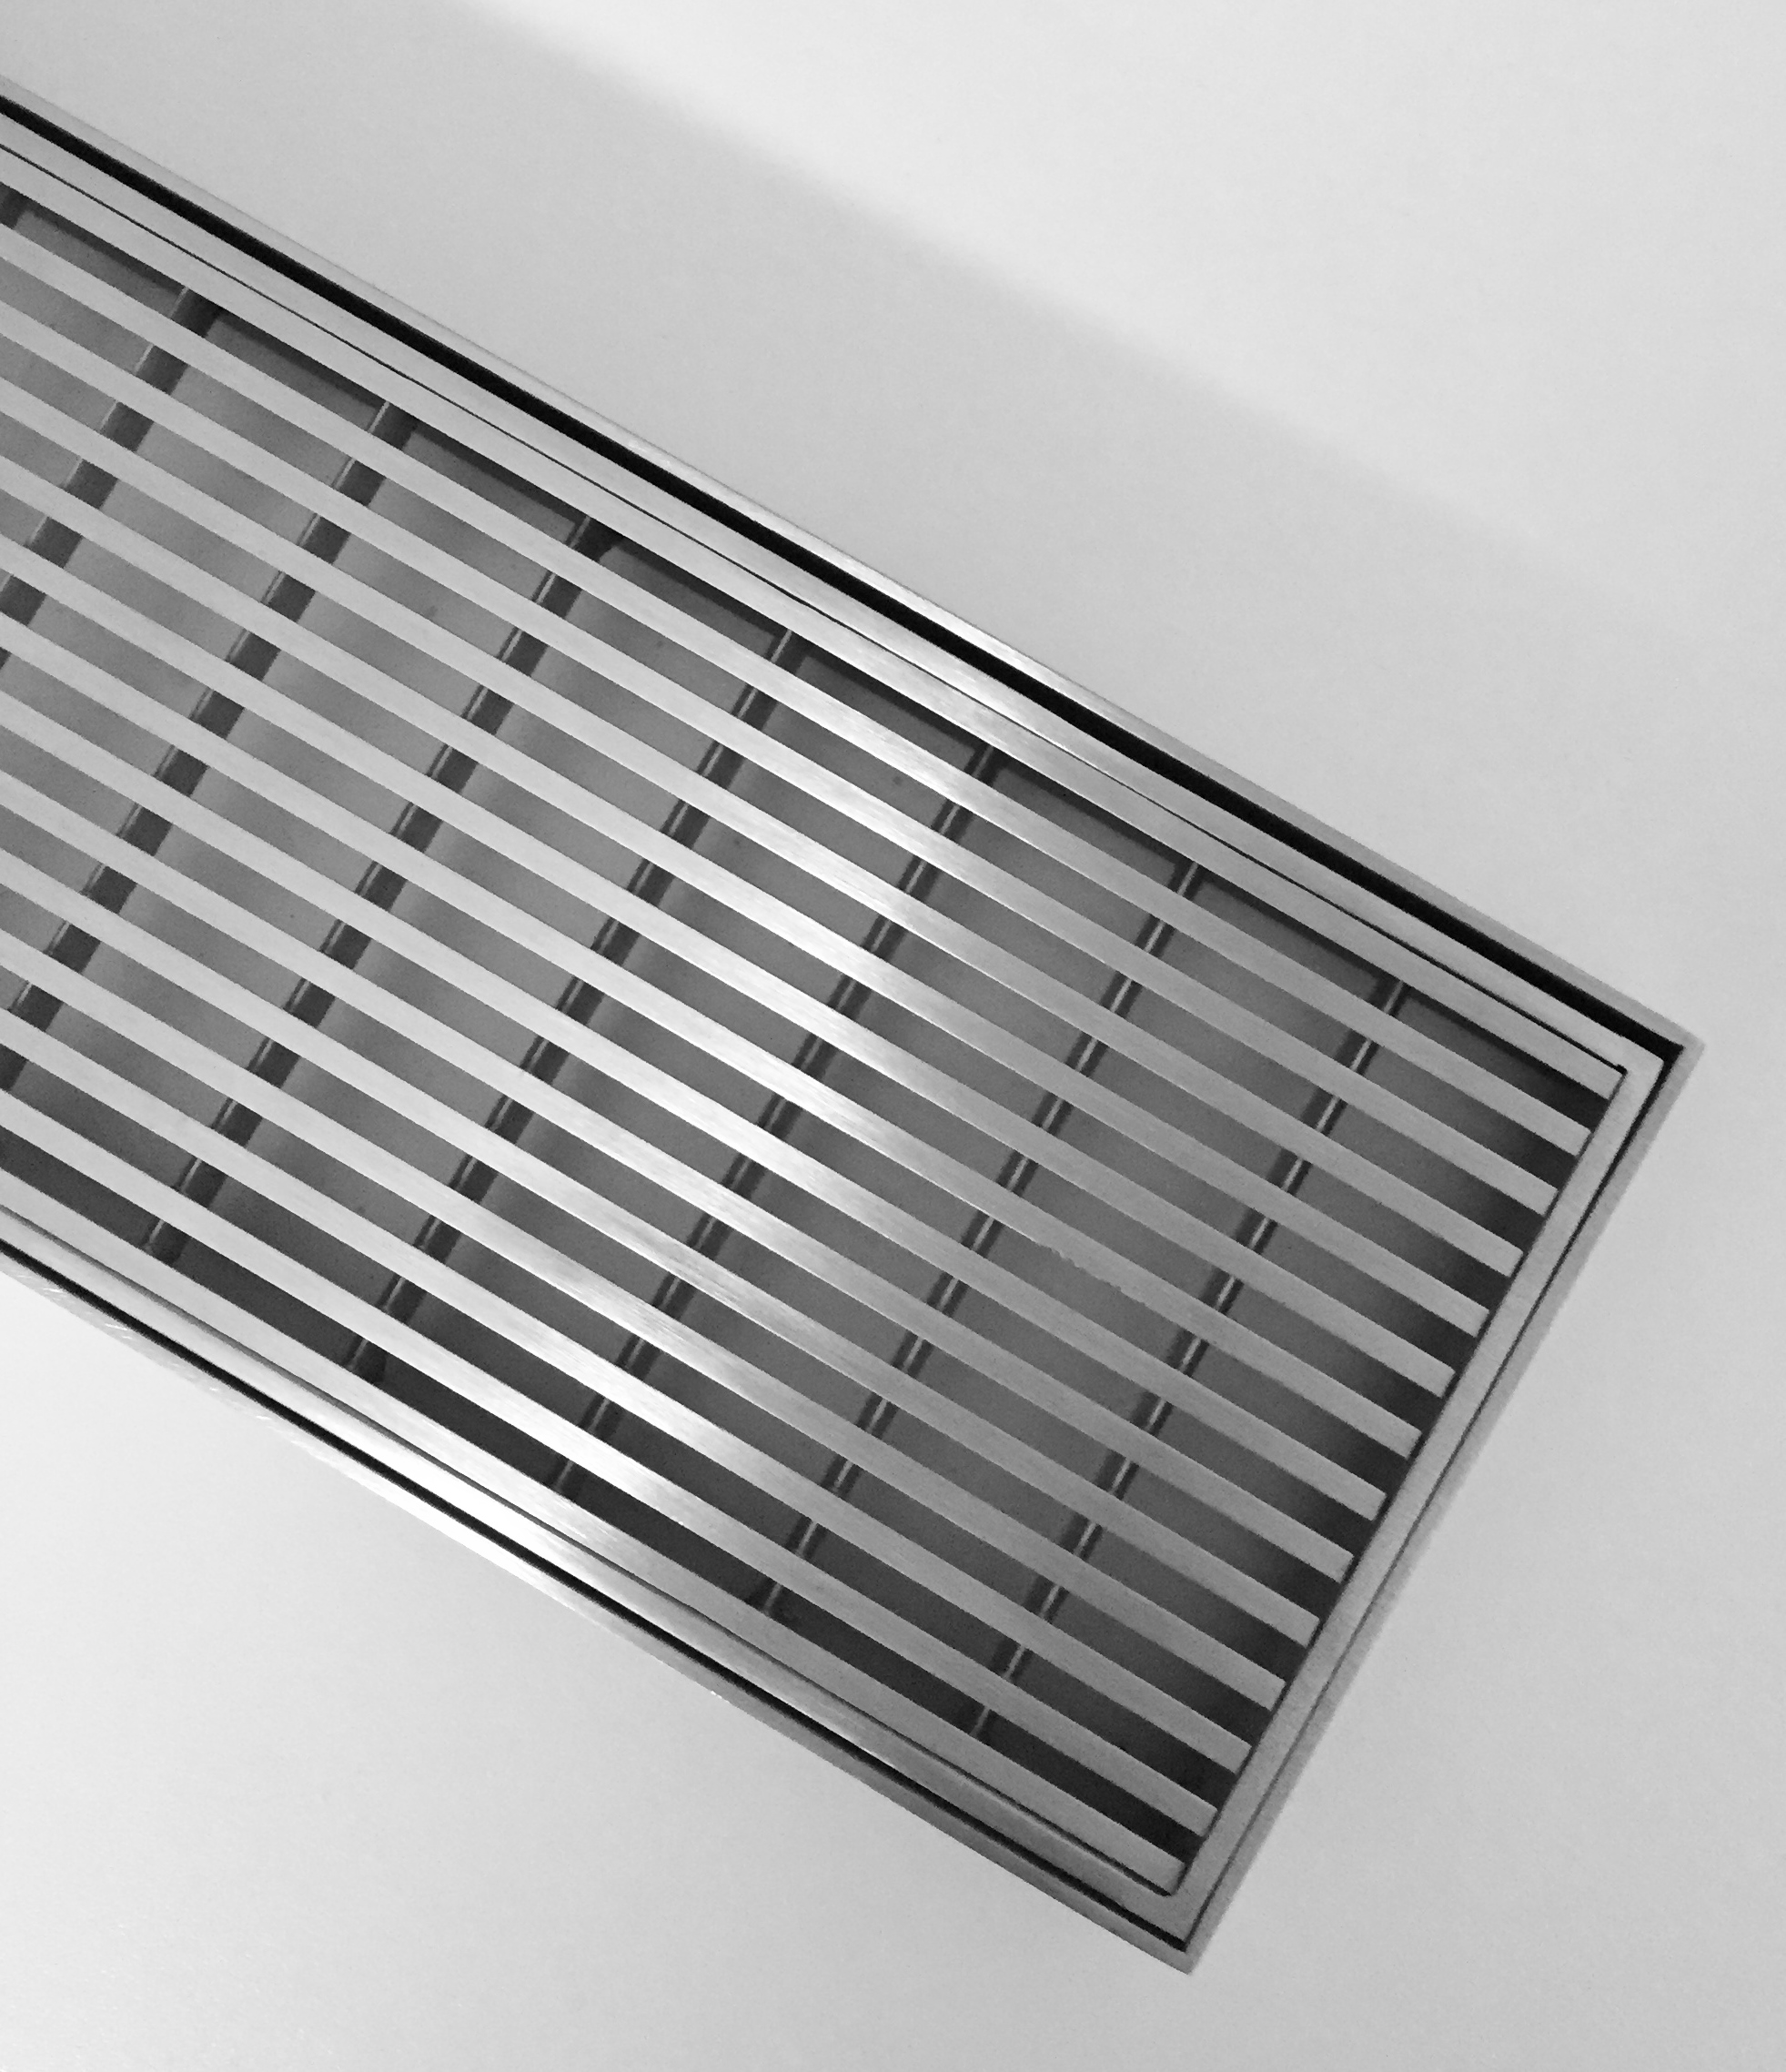 Stainless Steel Grates Amp Troughs